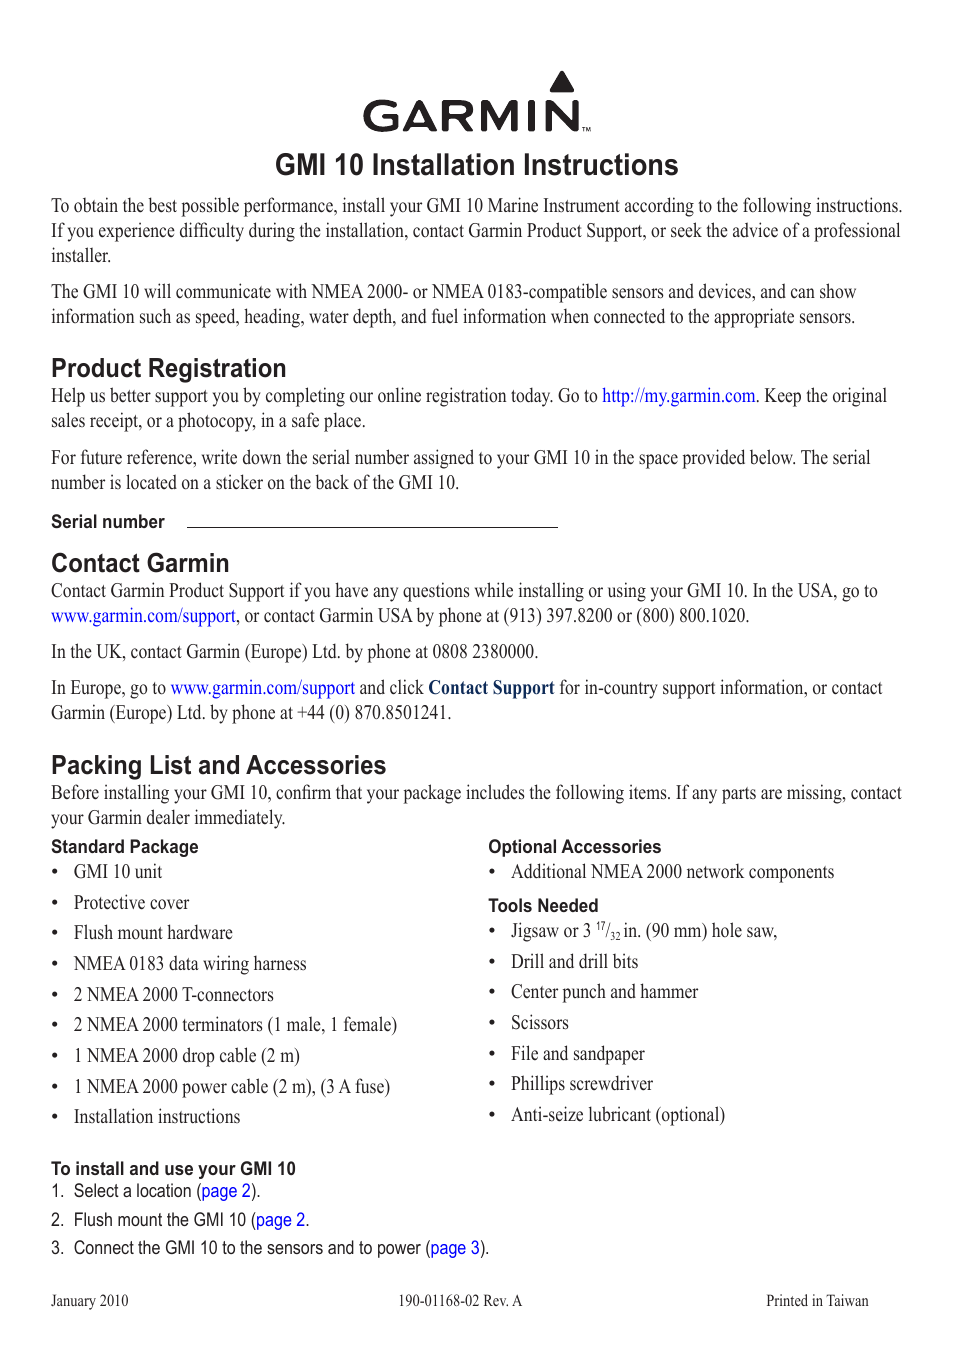 Garmin GMI 10 User Manual | 8 pages | Also for: 190-01168-02